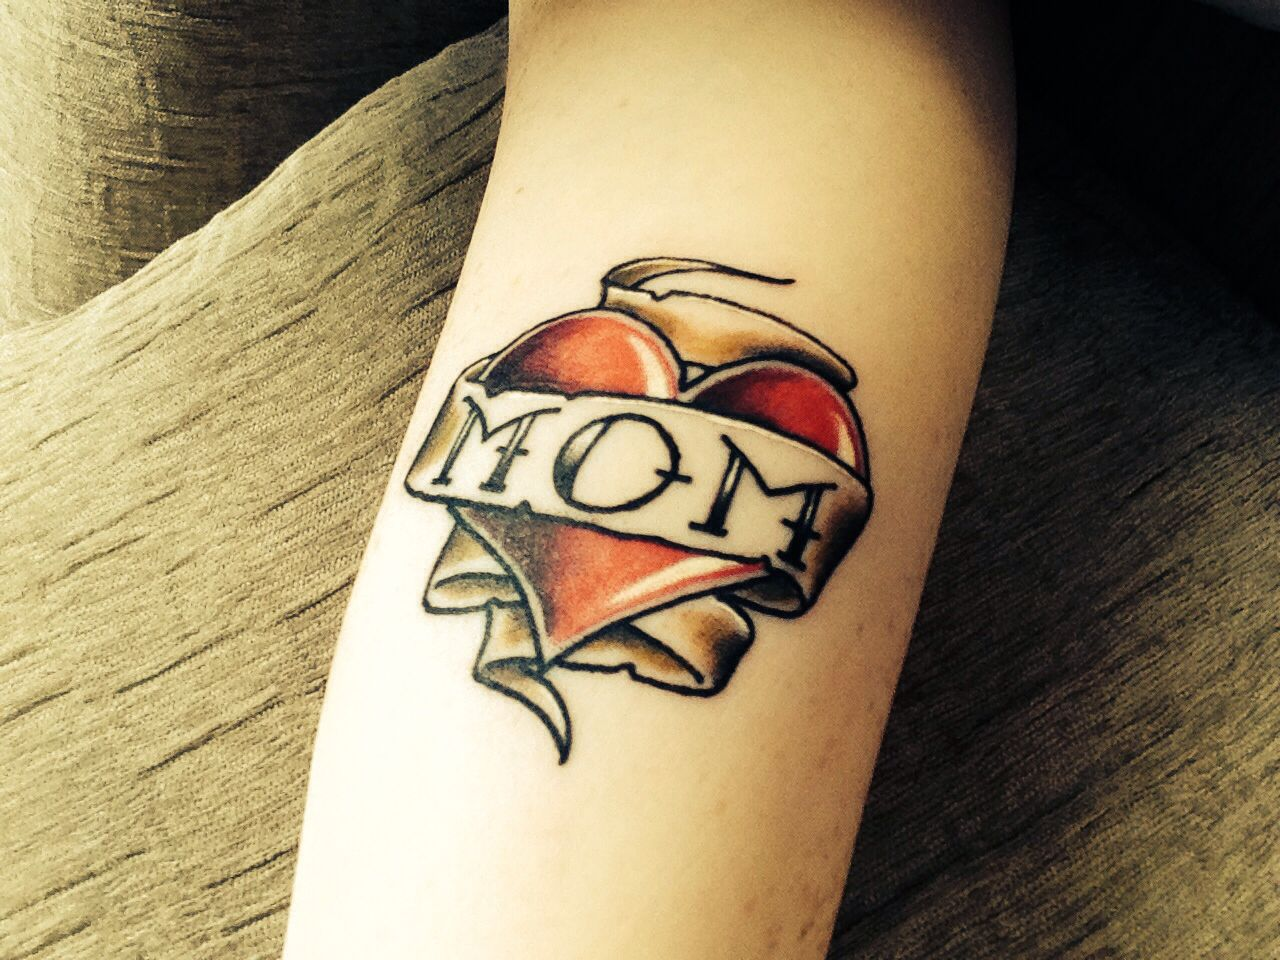 20+ Stunning Traditional heart tattoo with banner image ideas